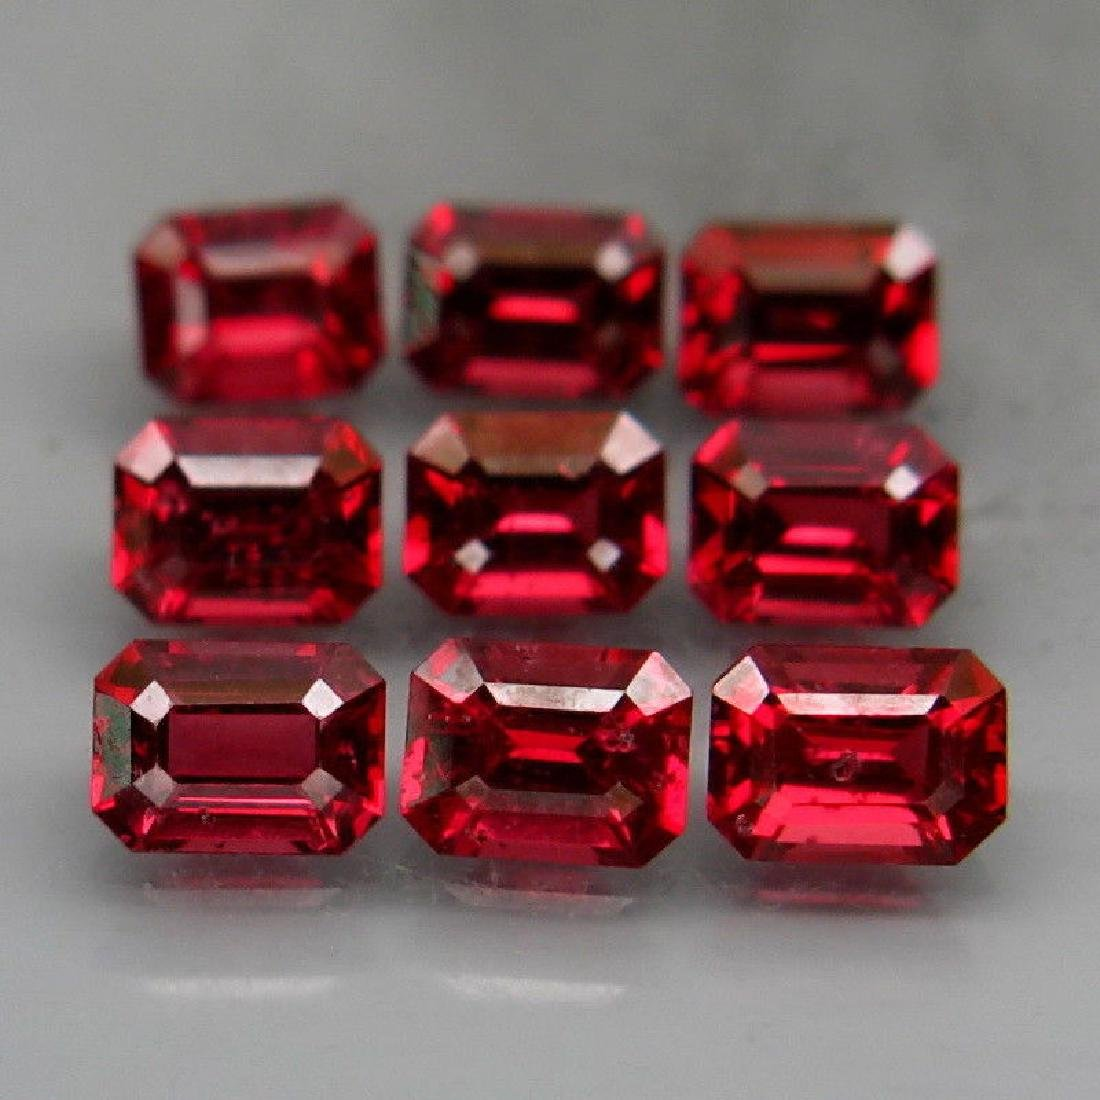 Natural Red Spinel 2.71 Cts - Untreated